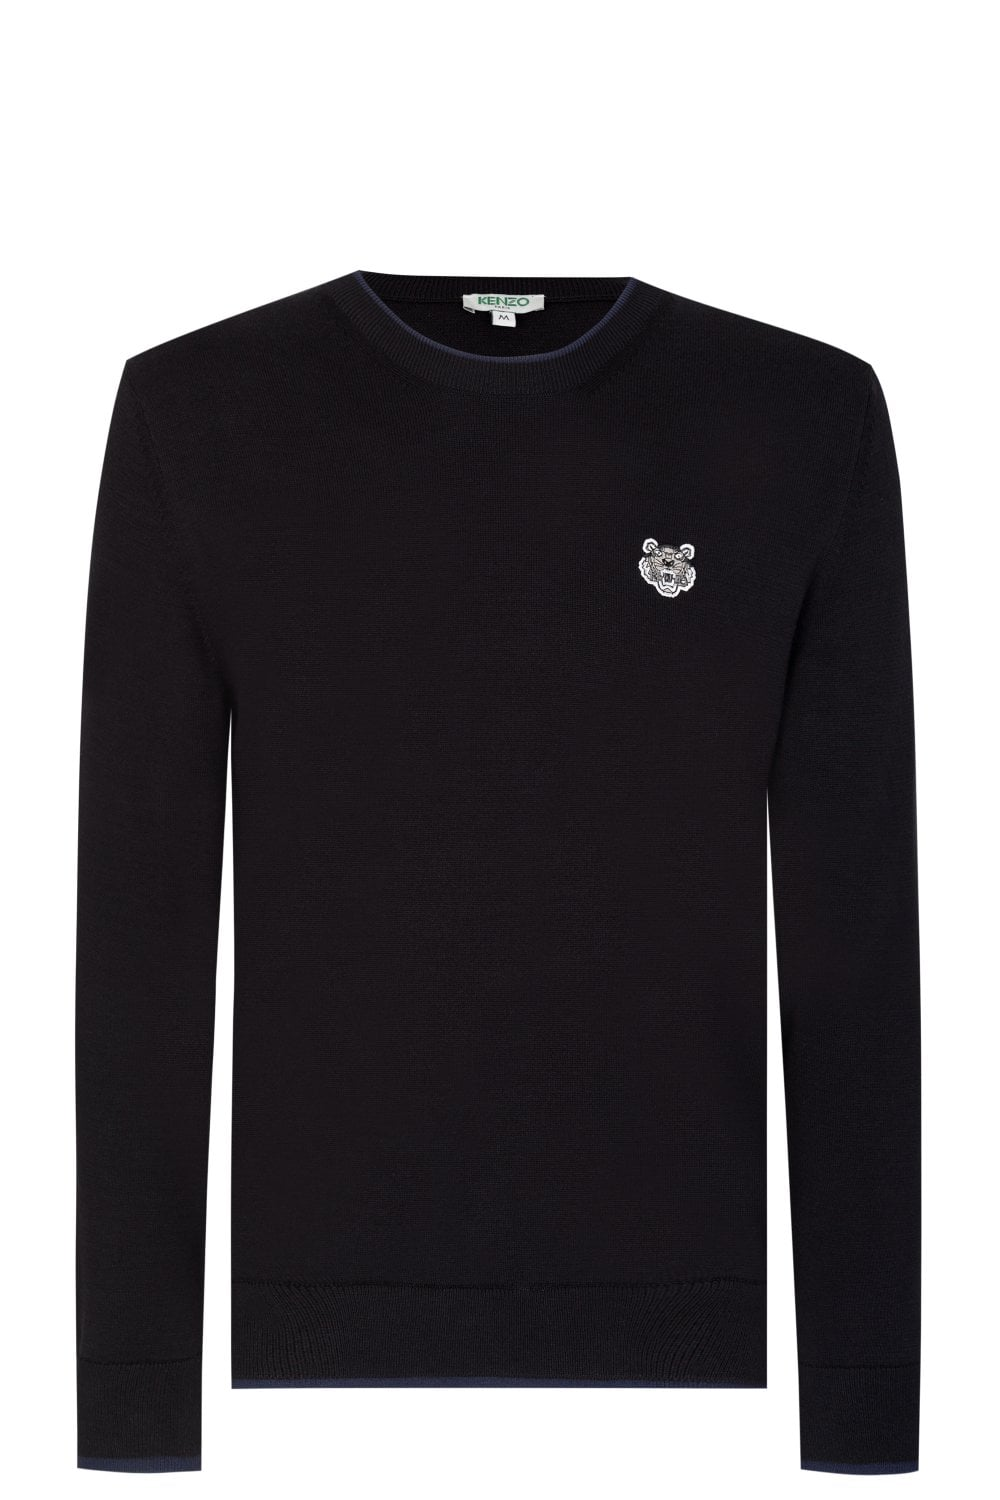 ac2e0a88 KENZO Kenzo Paris Chest Tiger knitted Sweater - Clothing from Circle ...